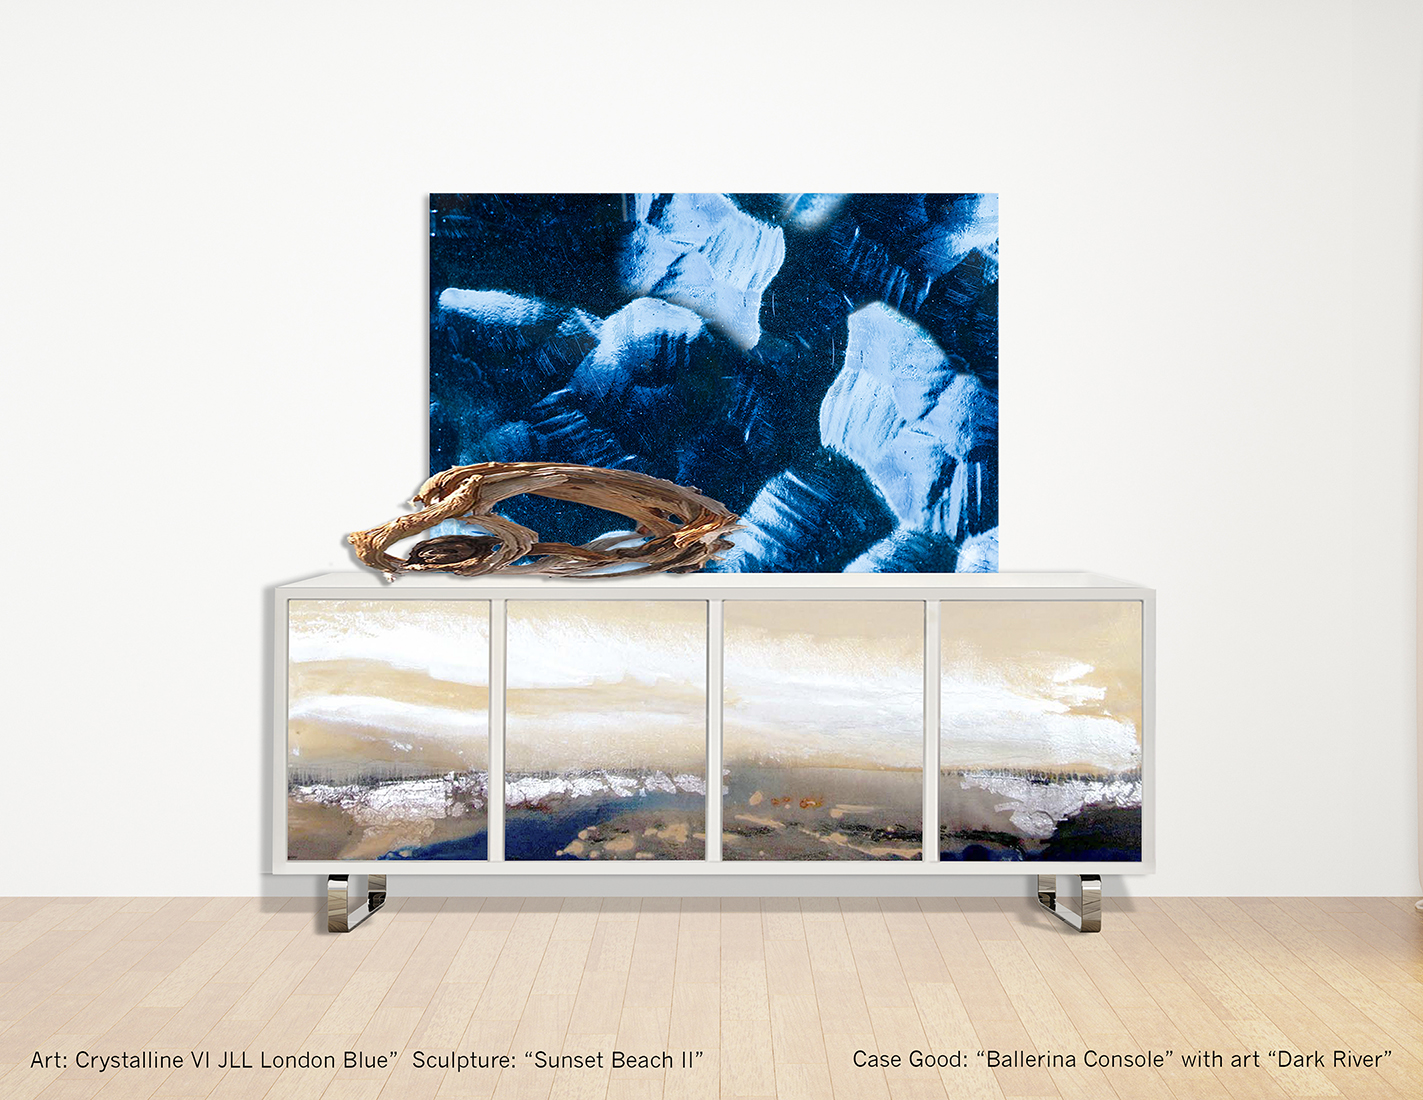 Ballerina Console with Dark River art